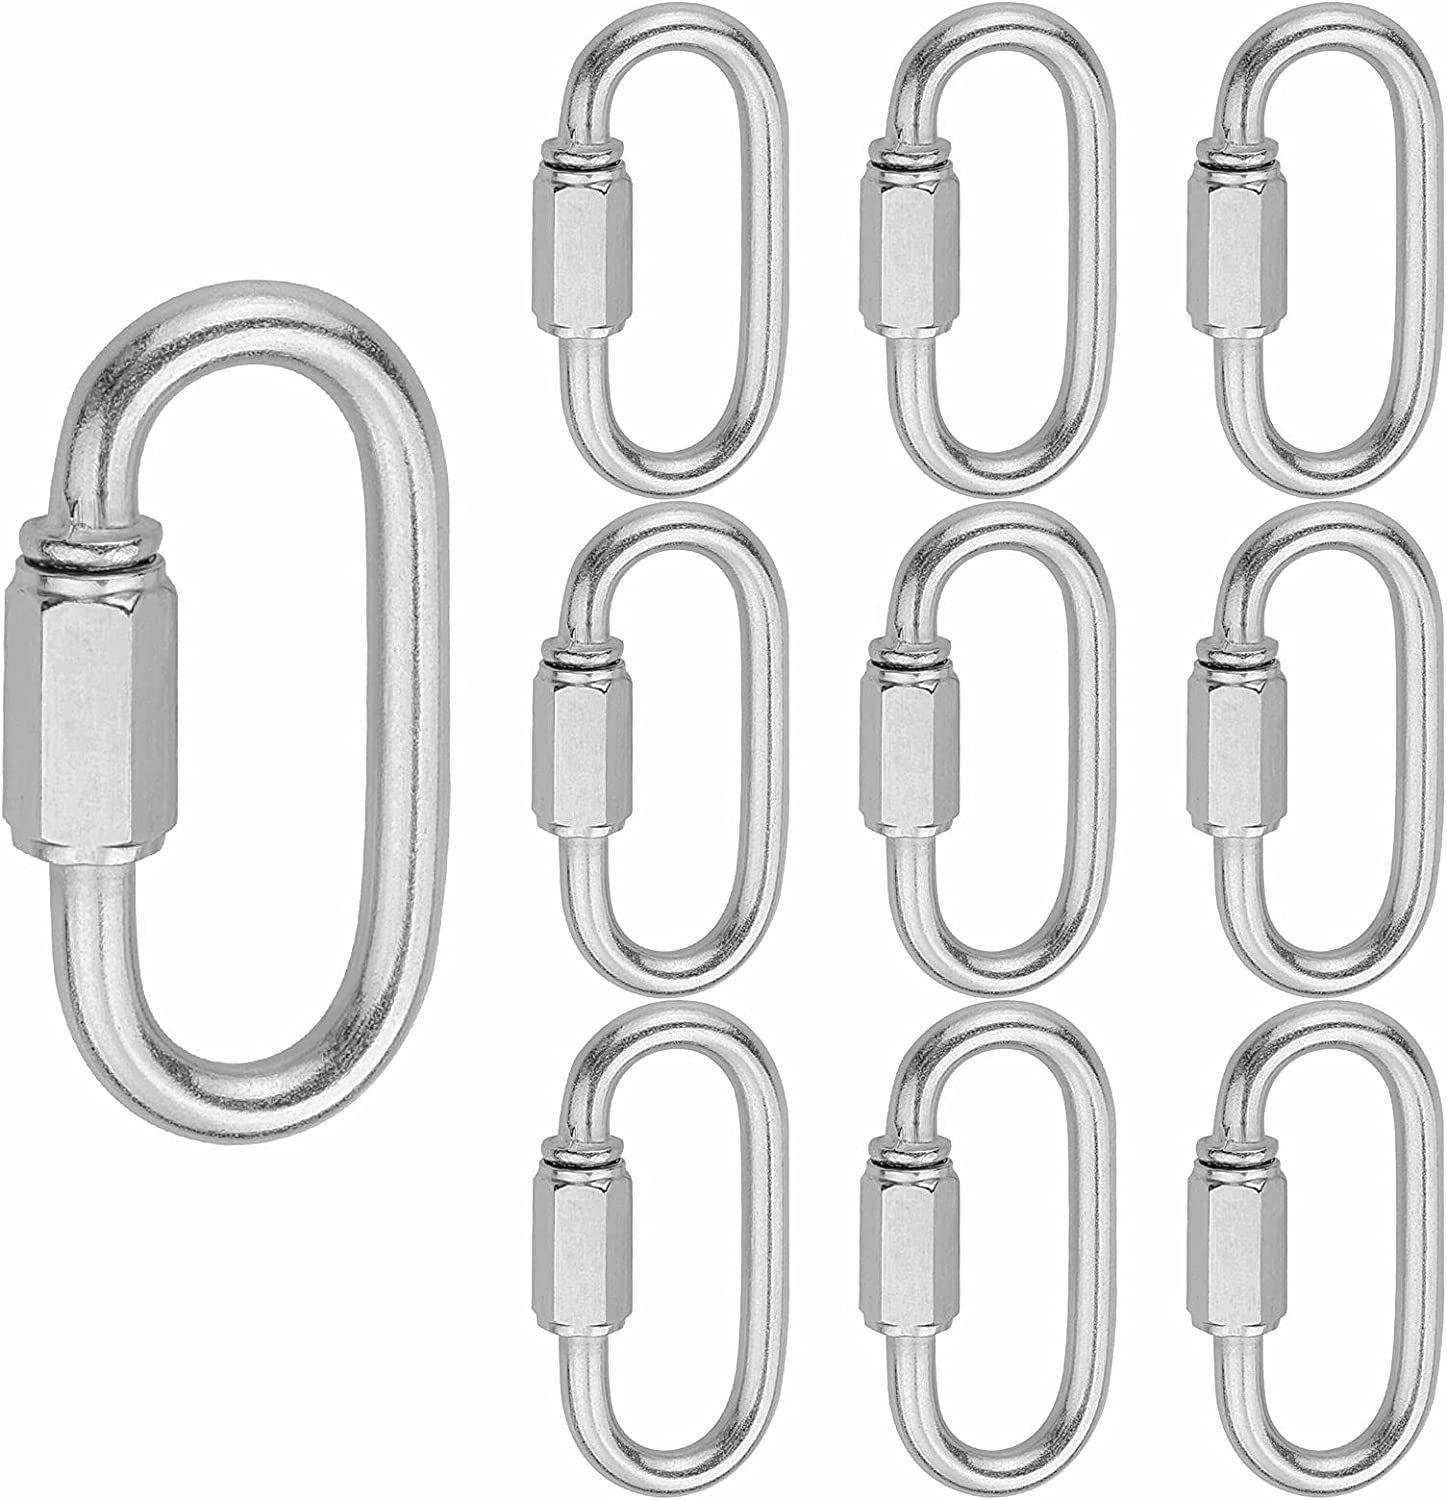 Holan Popularity M5 Quick Links Chain Connector Locking Carabiner Max 40% OFF Clip10pcs